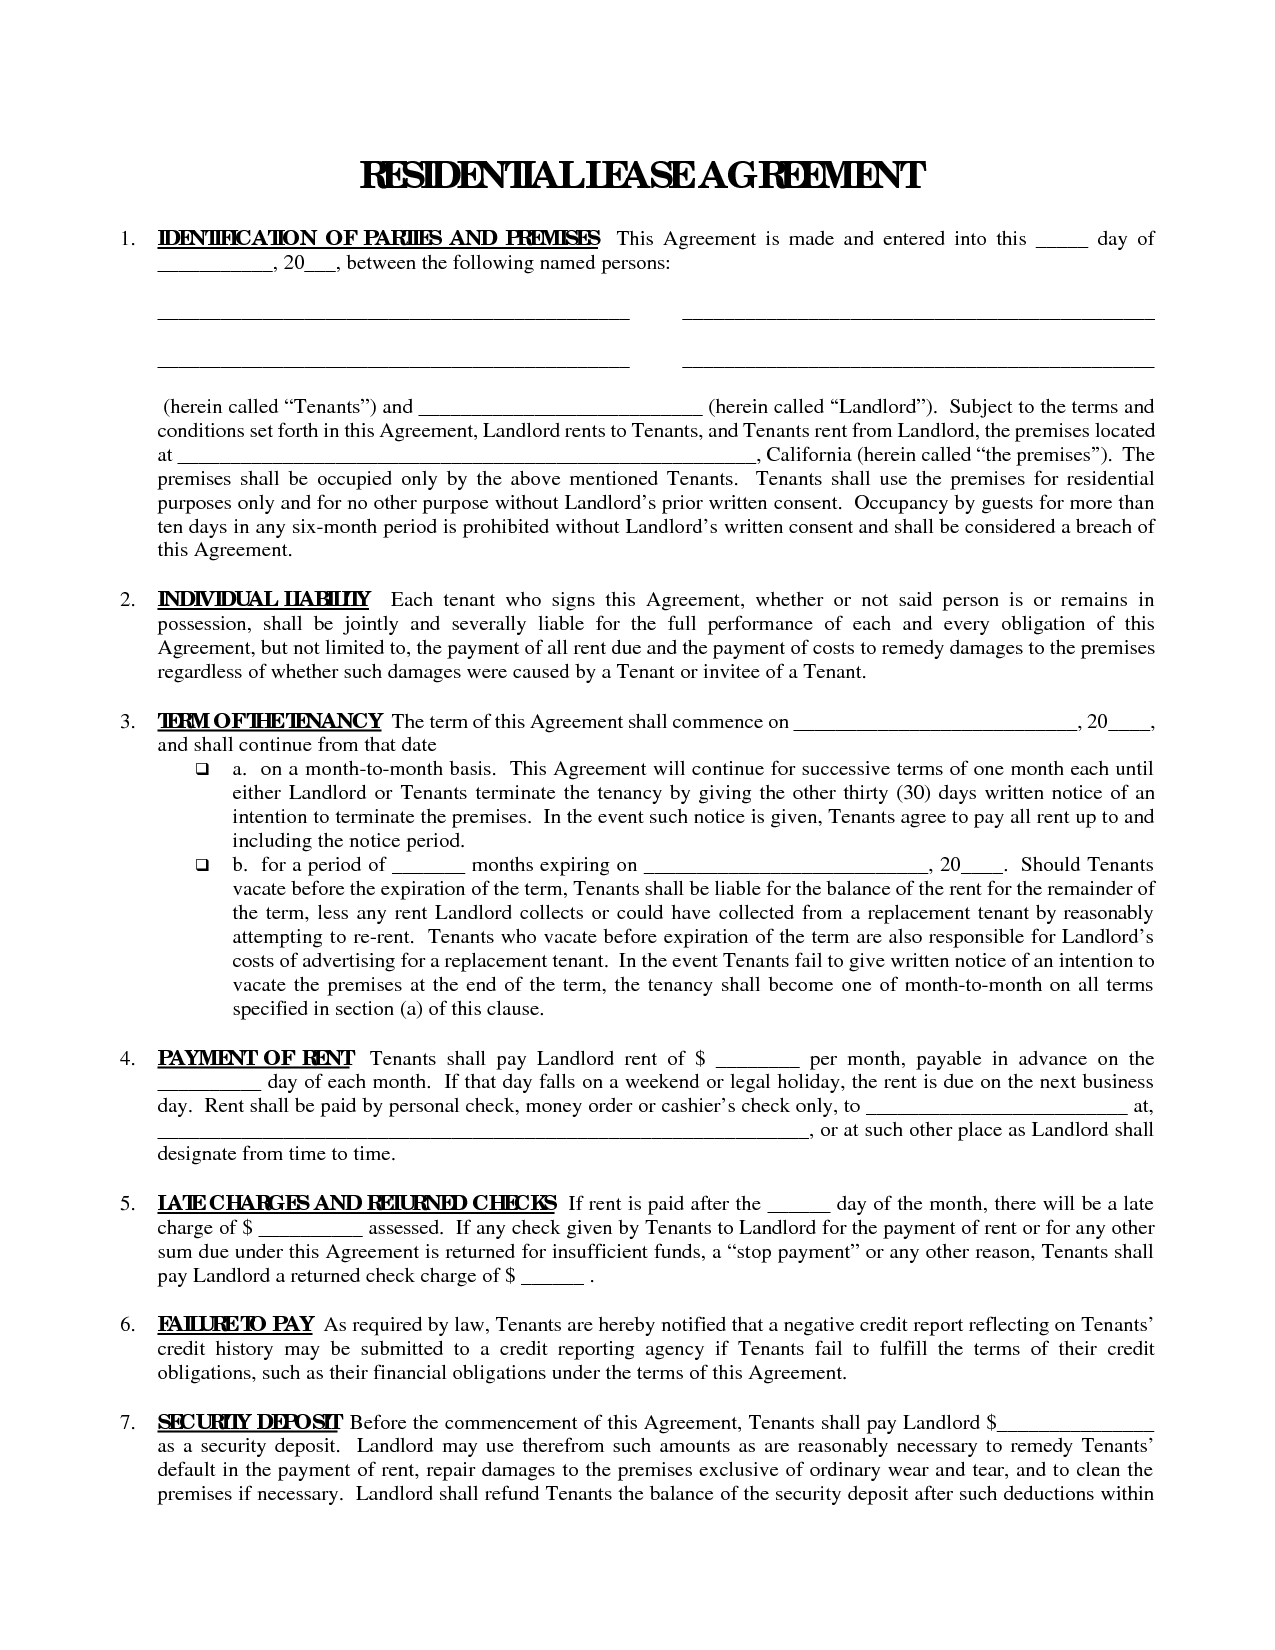 Printable Residential Free House Lease Agreement | Residential Lease  Agreement: Real Estate Legal Form  Free Lease Agreement Template Word Doc